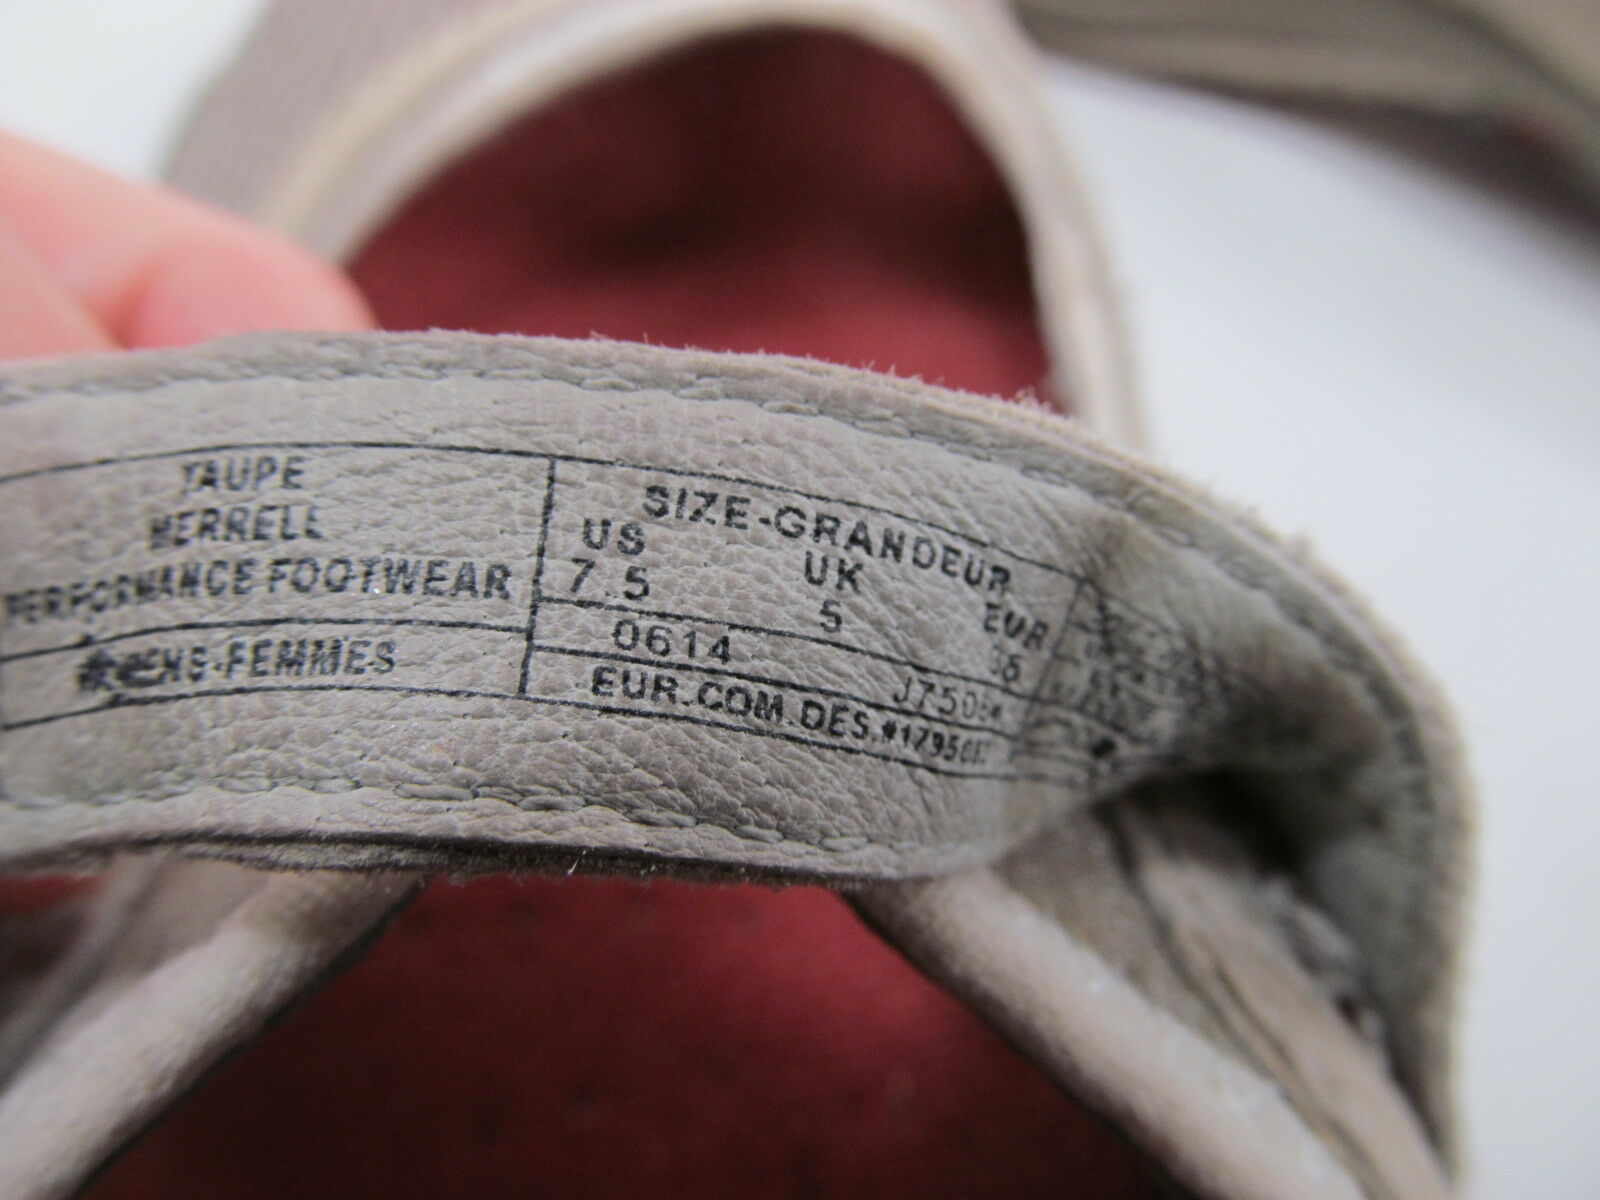 Merrell Taupe Womens Mesh Shoes Size 7.5 M Grey Suede Mary Jane Shoes image 9